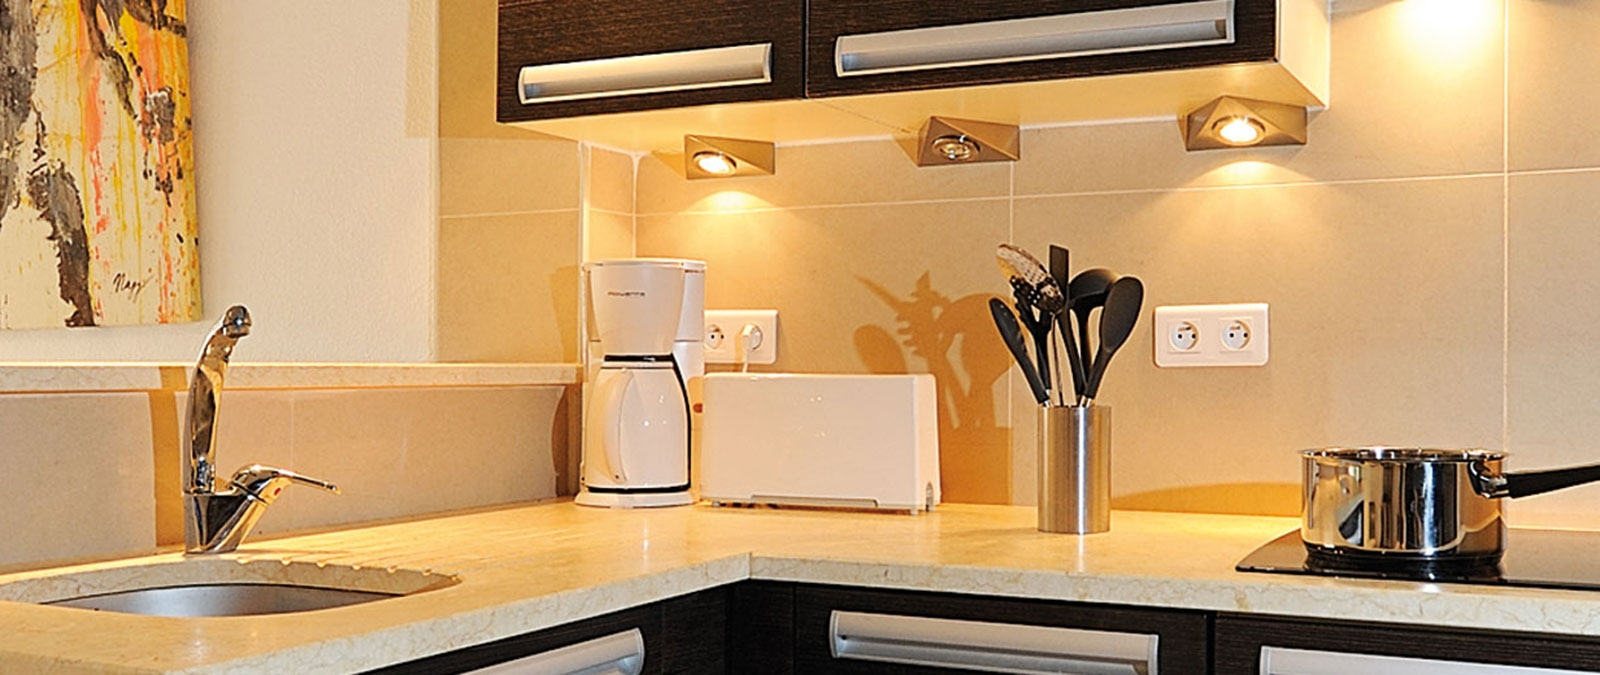 Villa libertine Acapulco with equipped kitchen